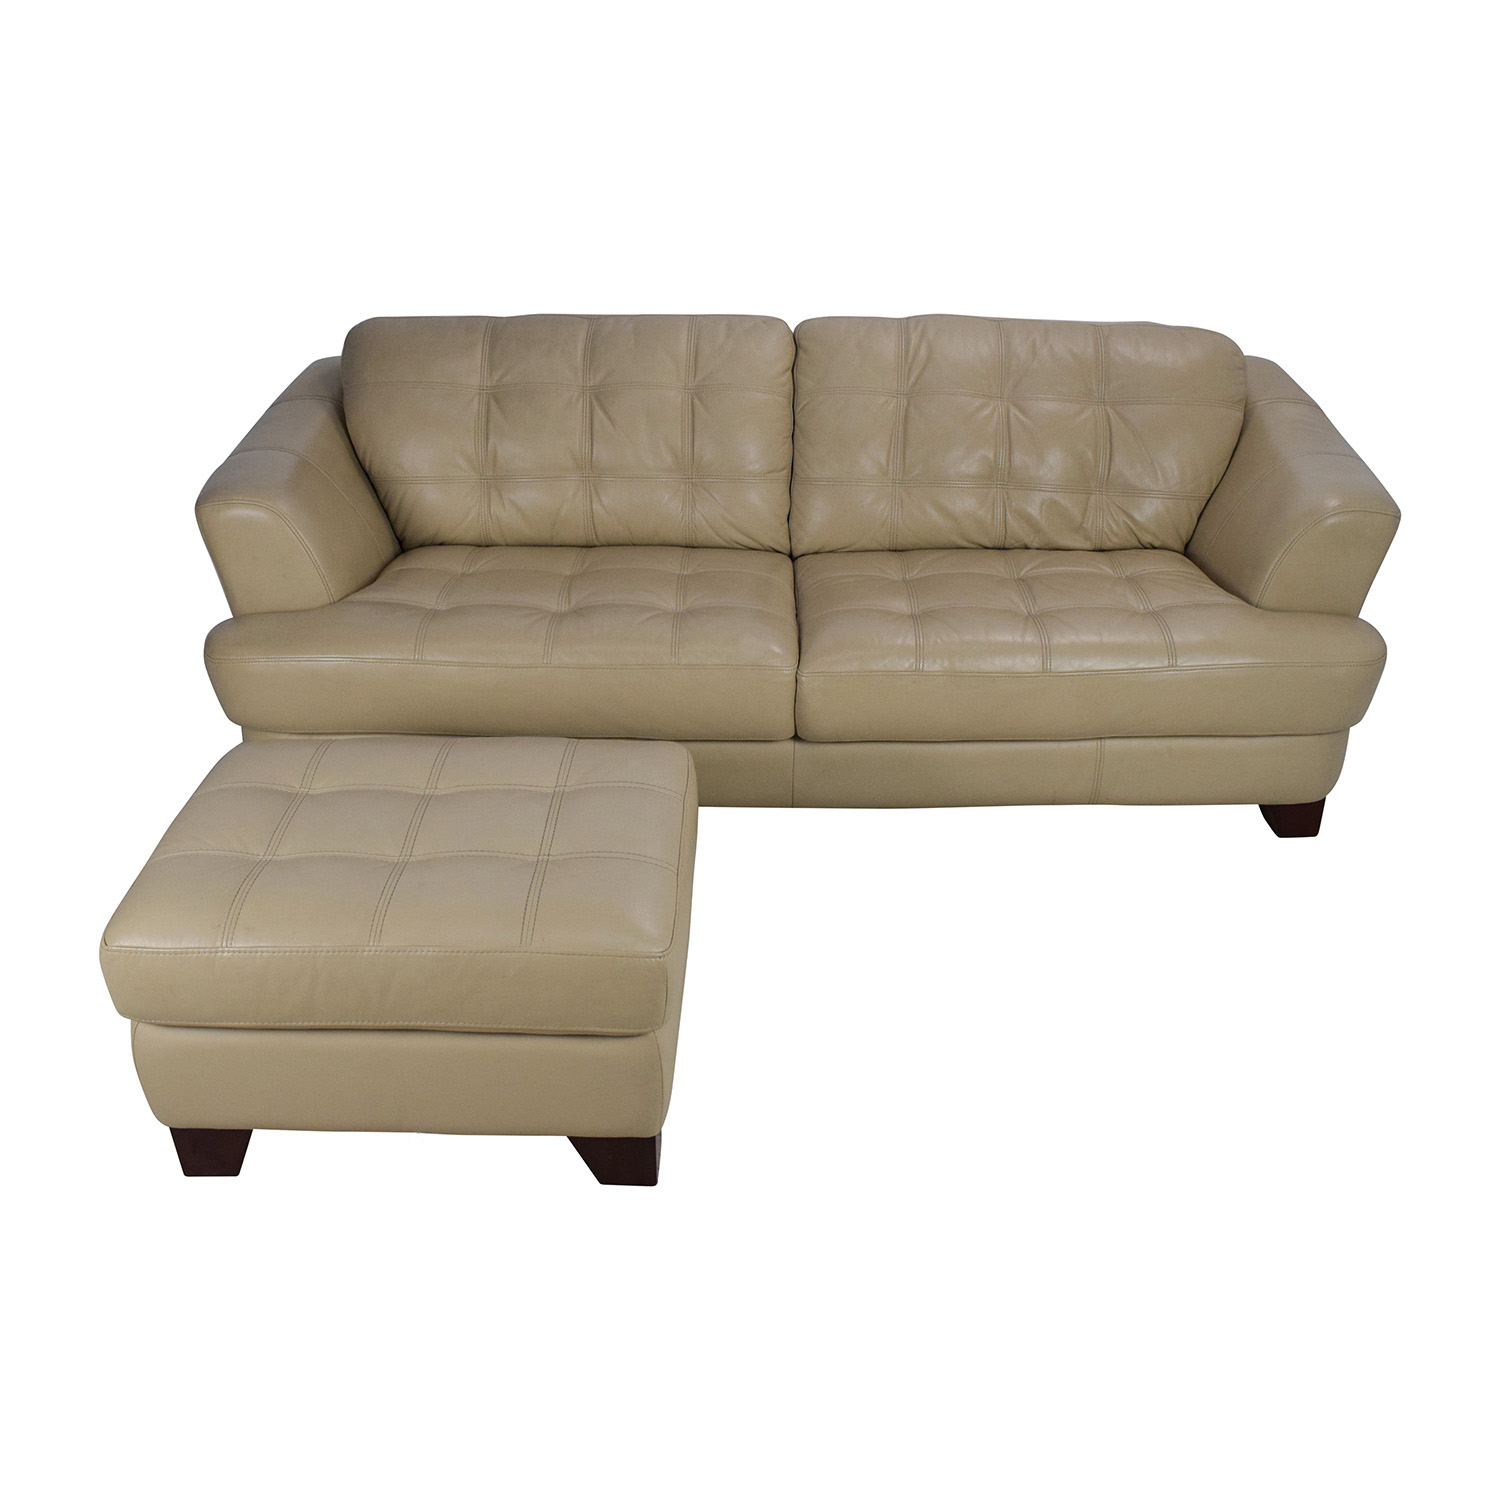 shop Bobs Furniture Leather Couch with Ottoman Bobs Furniture Classic Sofas